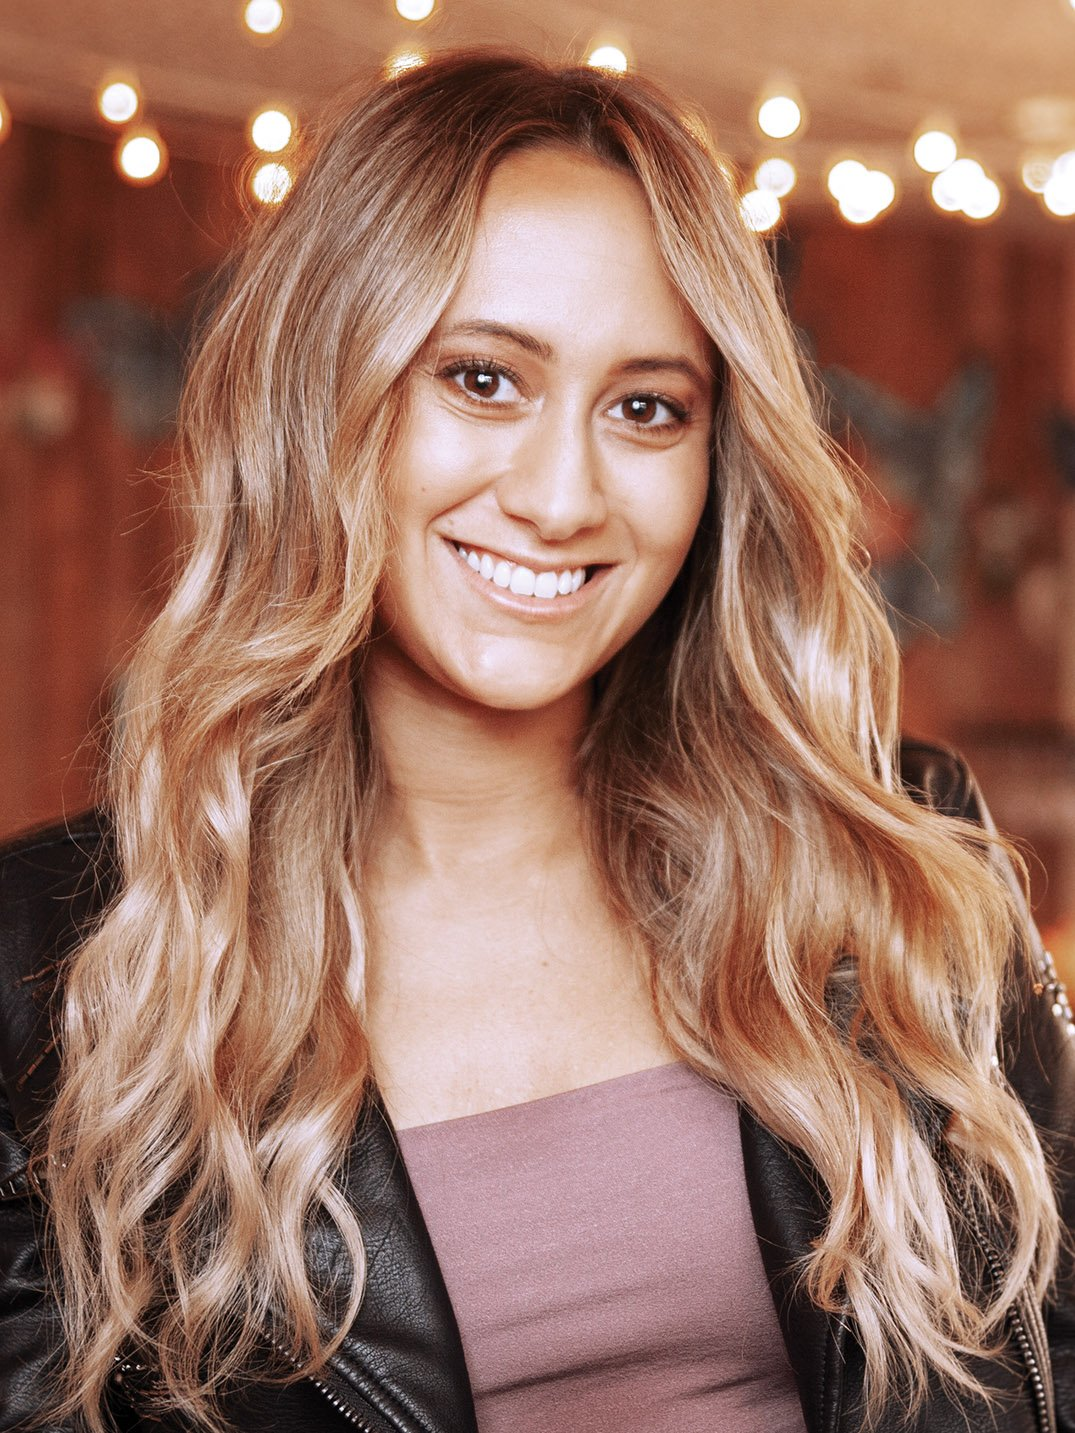 Salon Hair 4 Flawless Fall Hair Trends You Can Rock This Season Salon Eva